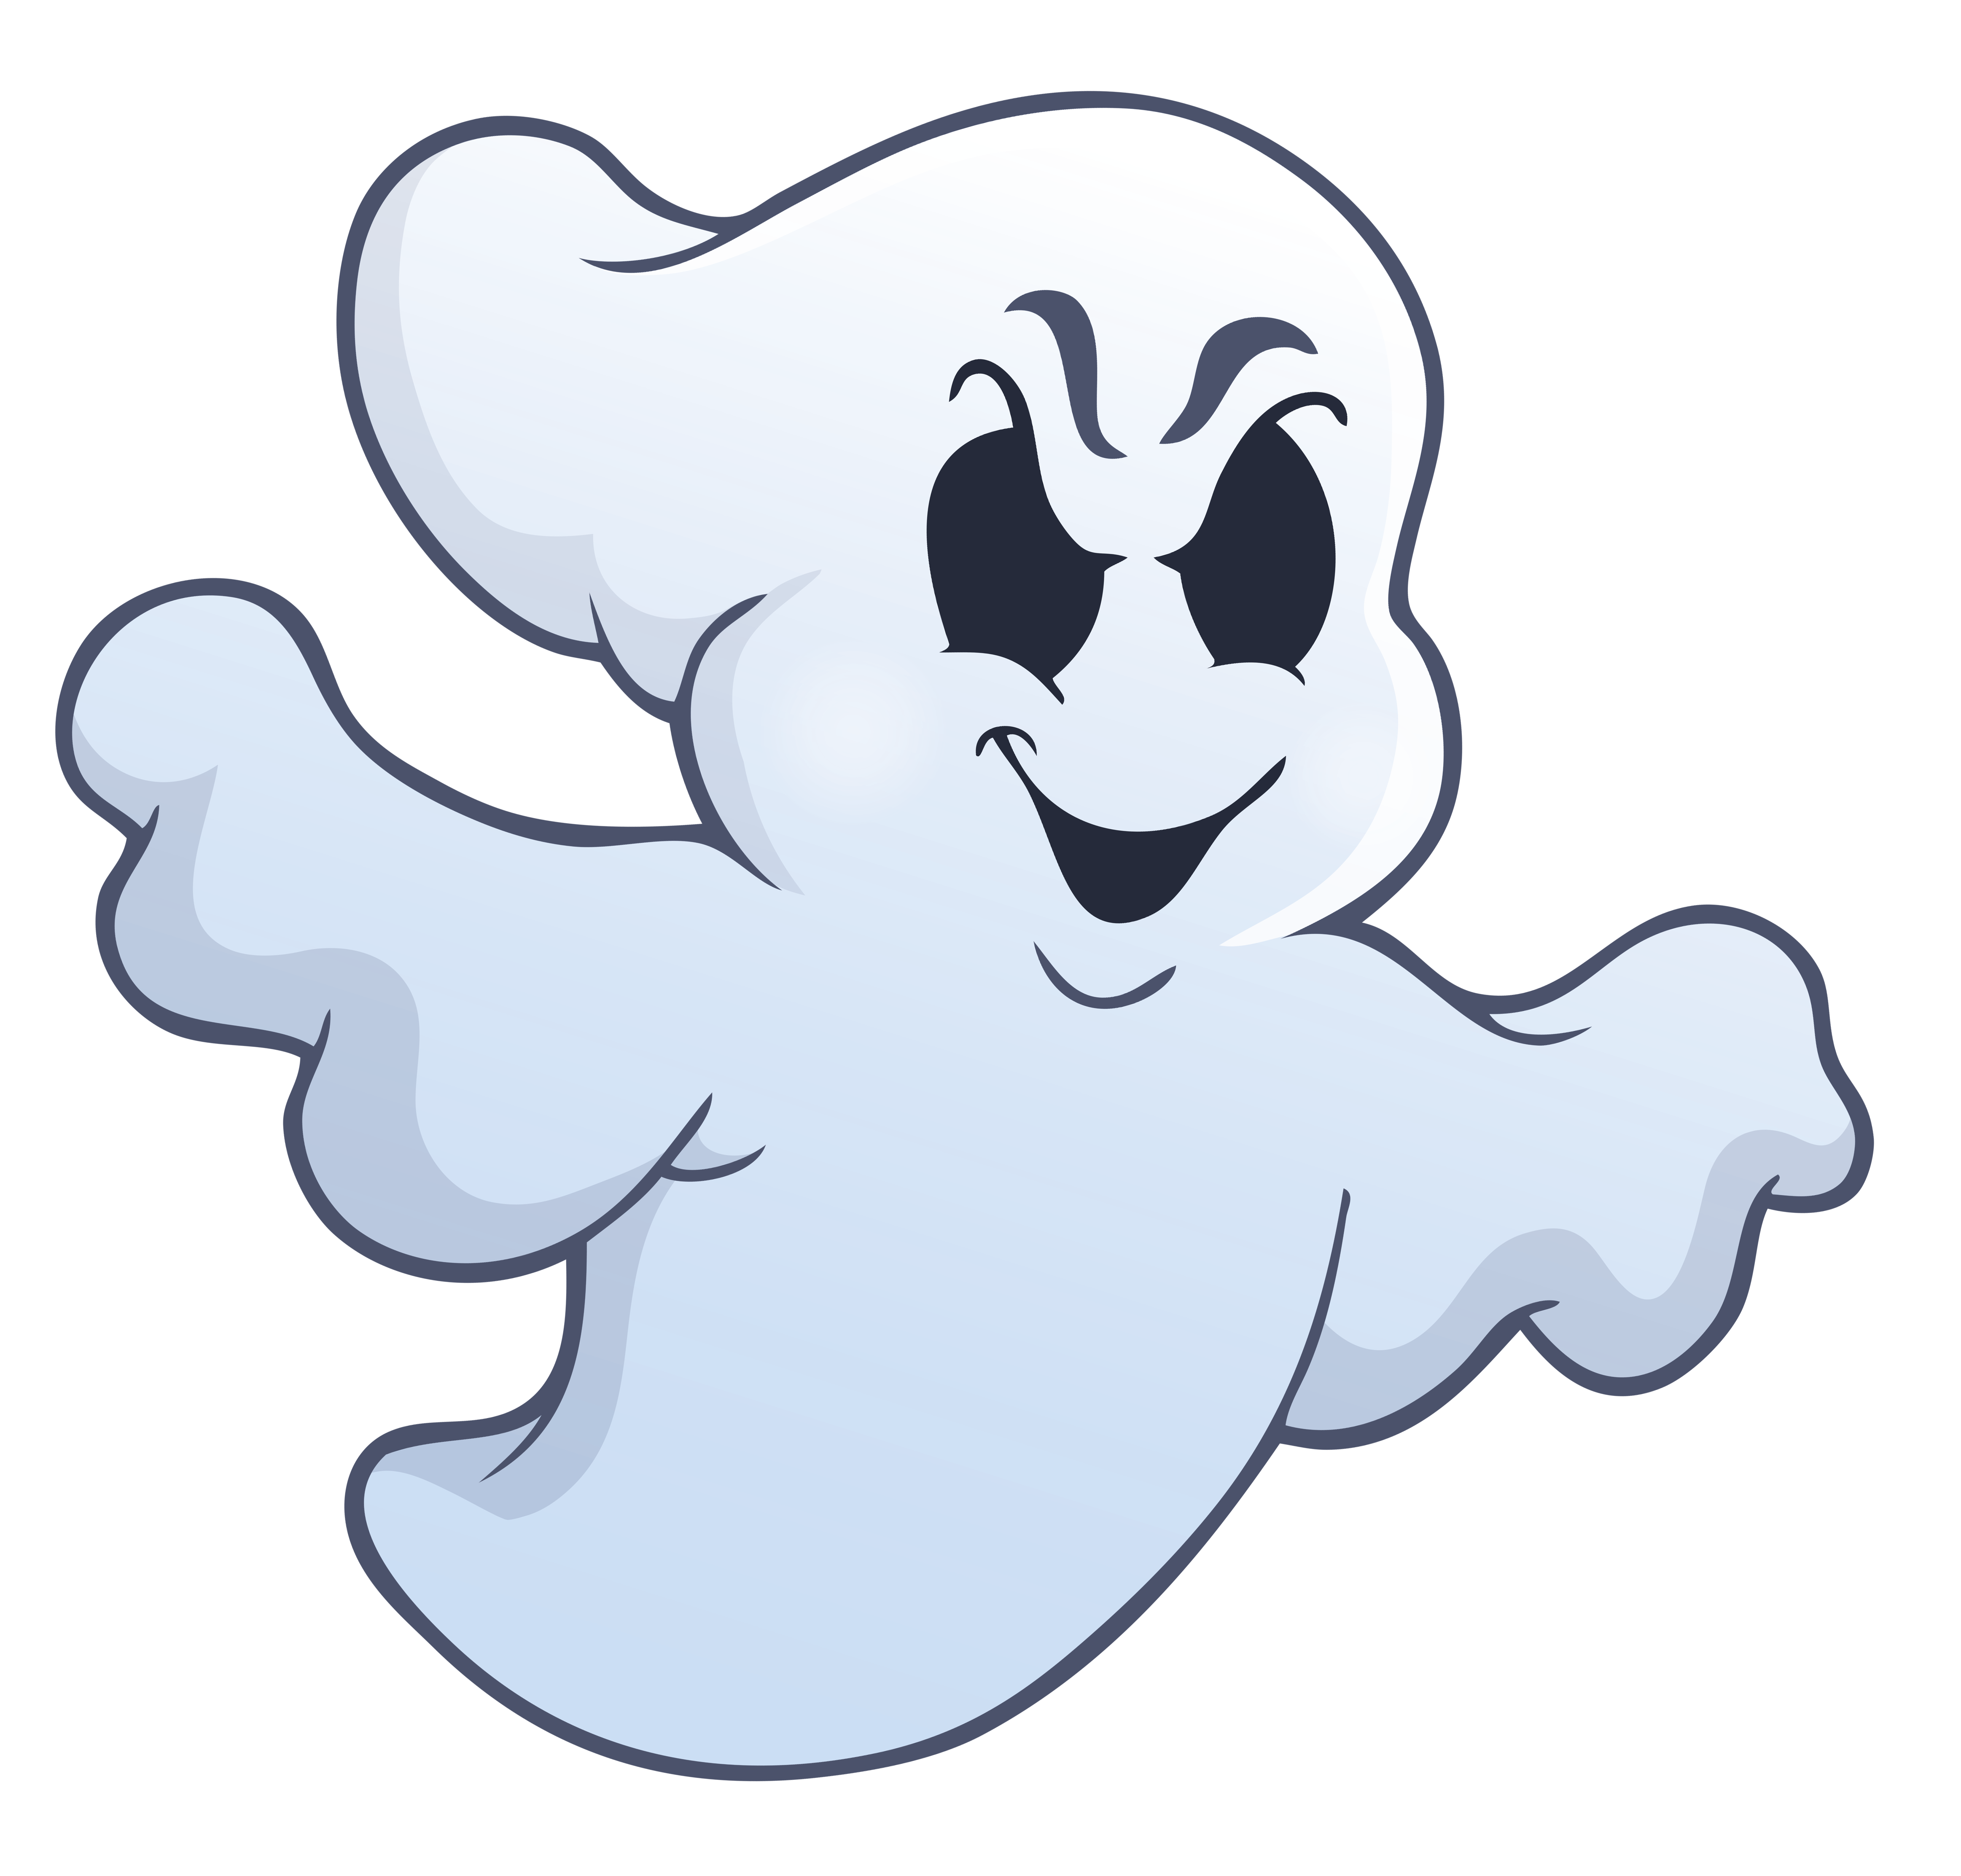 Bad clipart transparent. Halloween evil ghost png